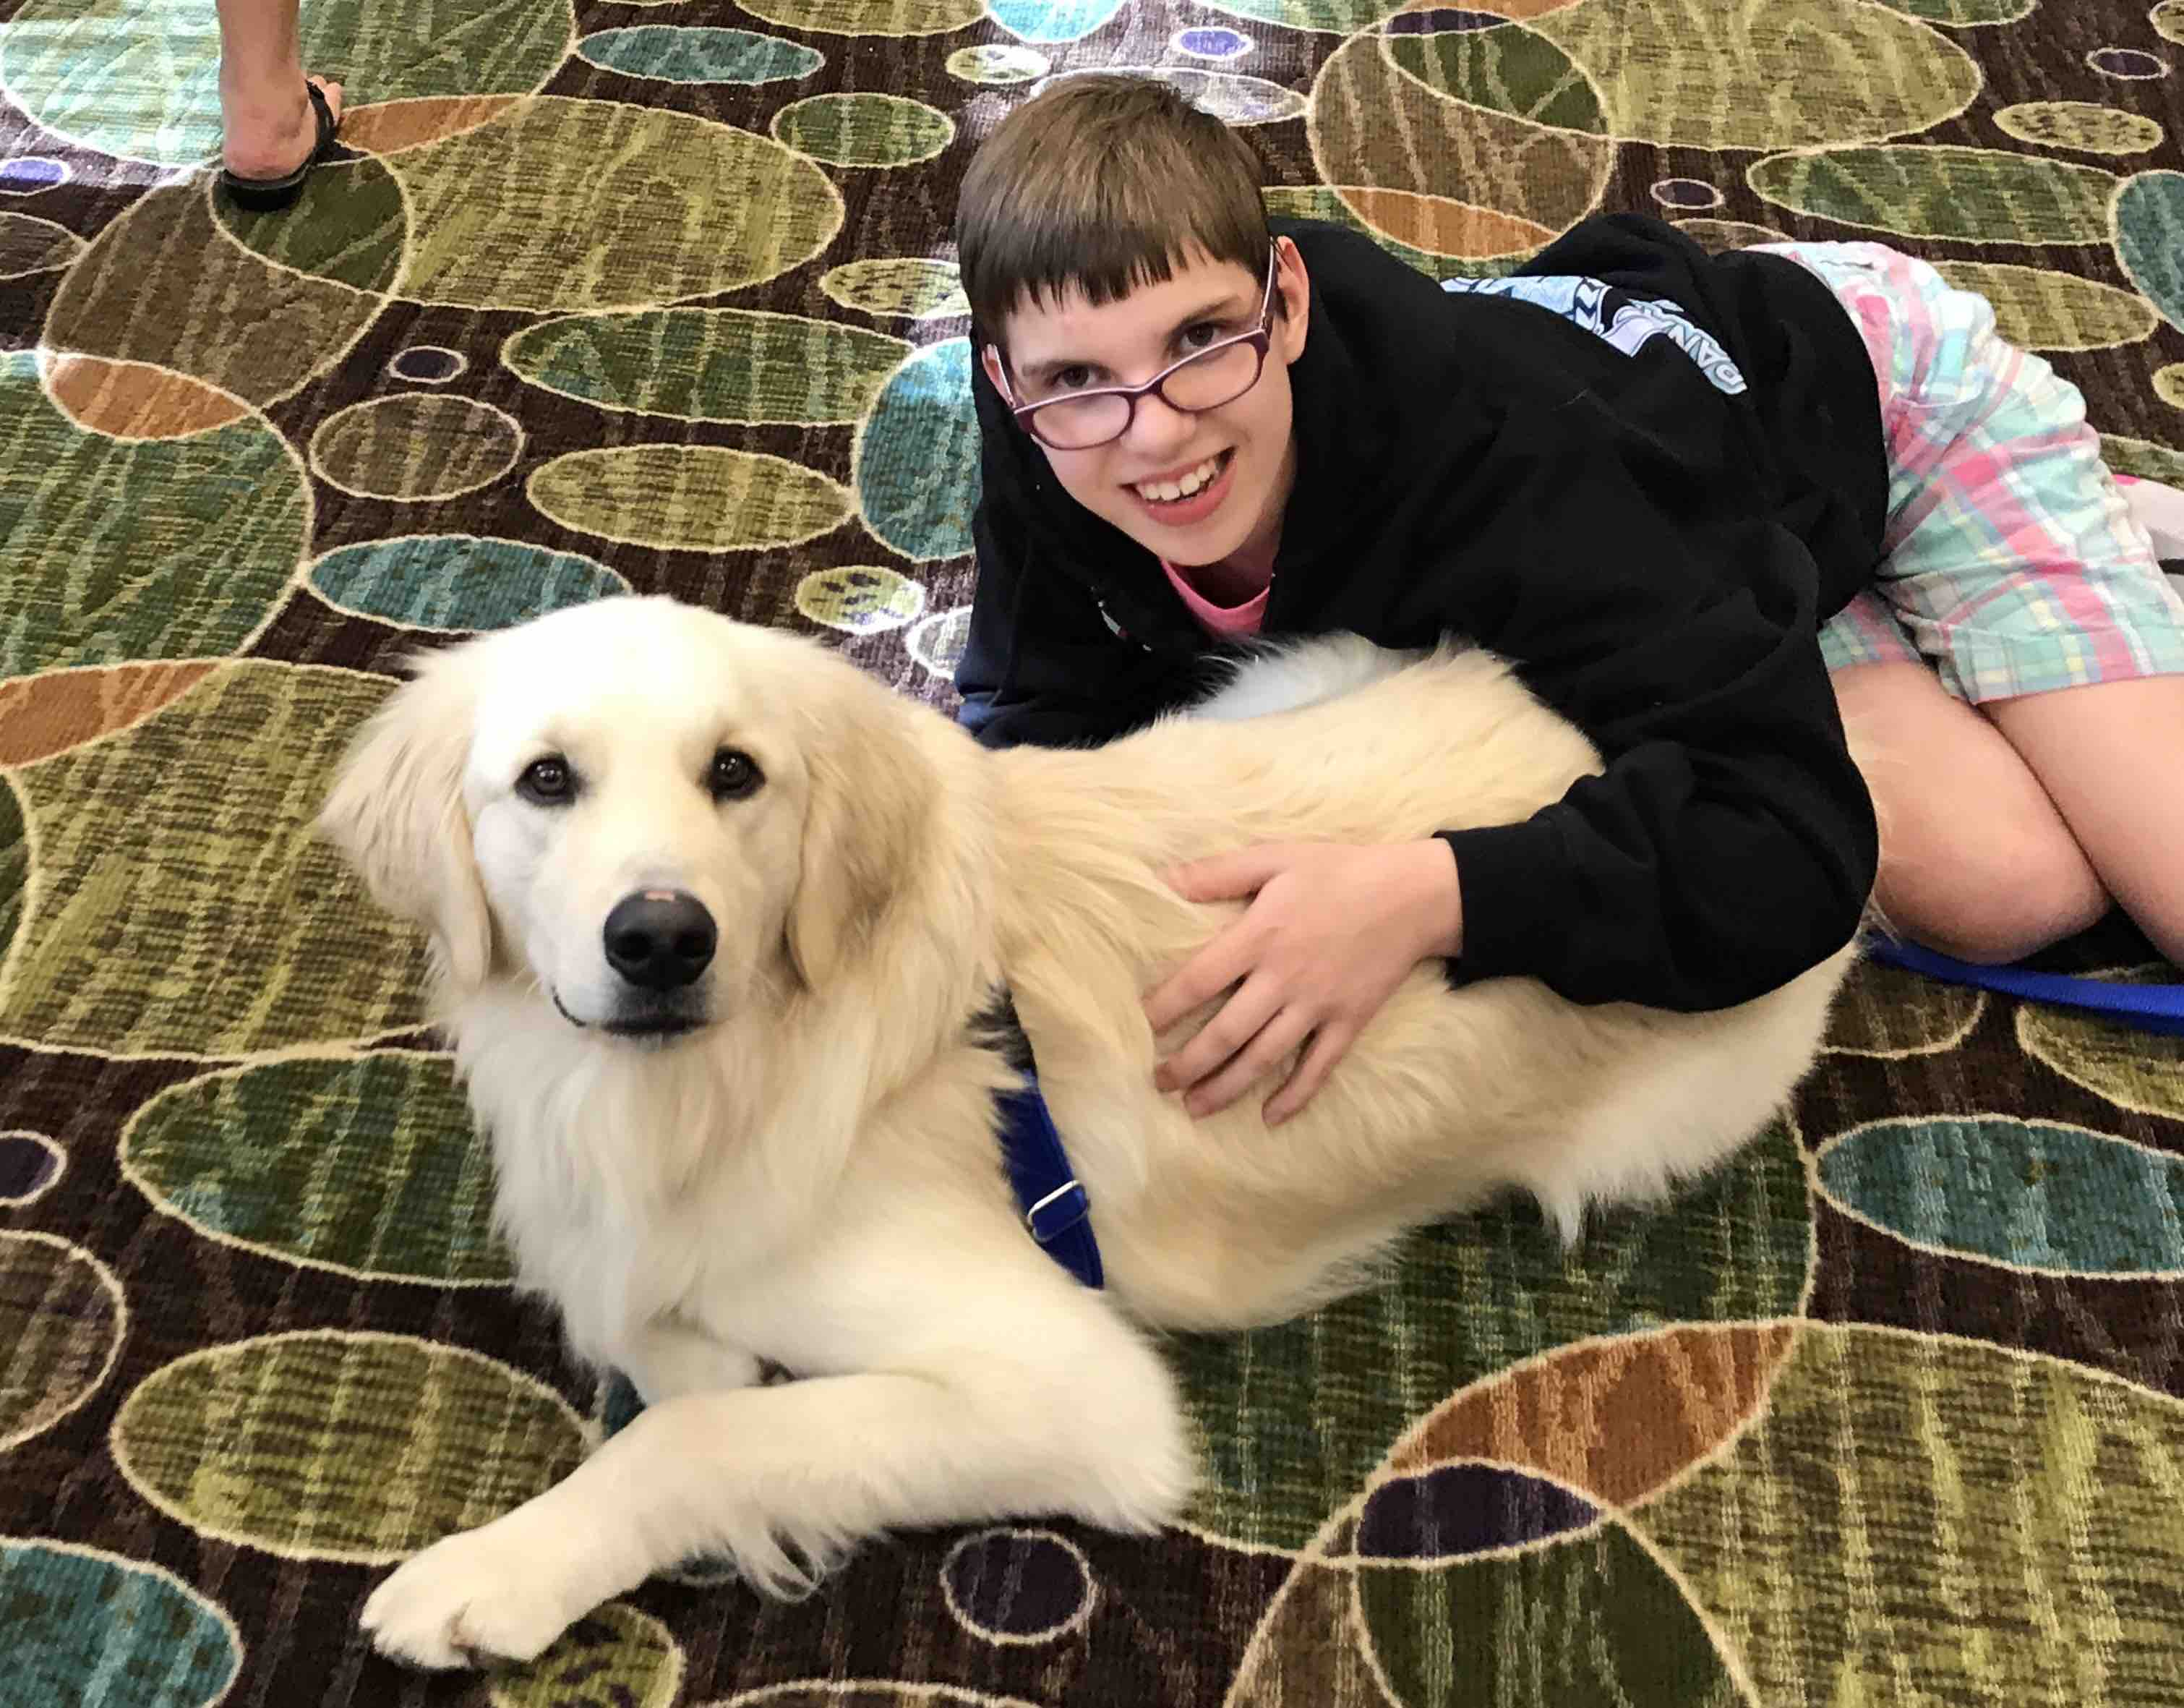 Fundraiser by Jeannie Kohrs Camp An Autism Service Dog for Hannah